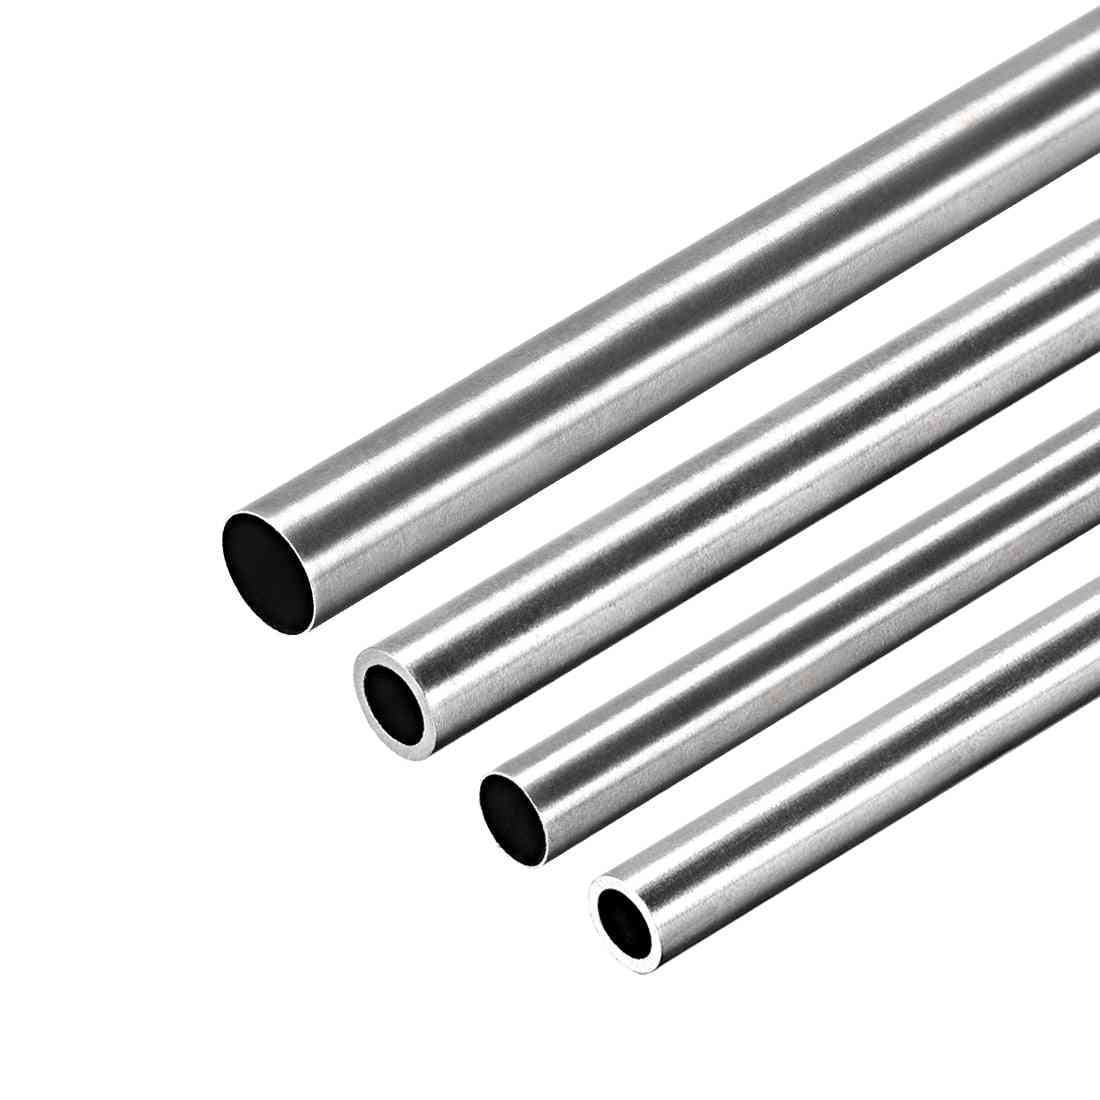 304 Stainless Steel Round Tubing, Seamless Straight Pipe Tube